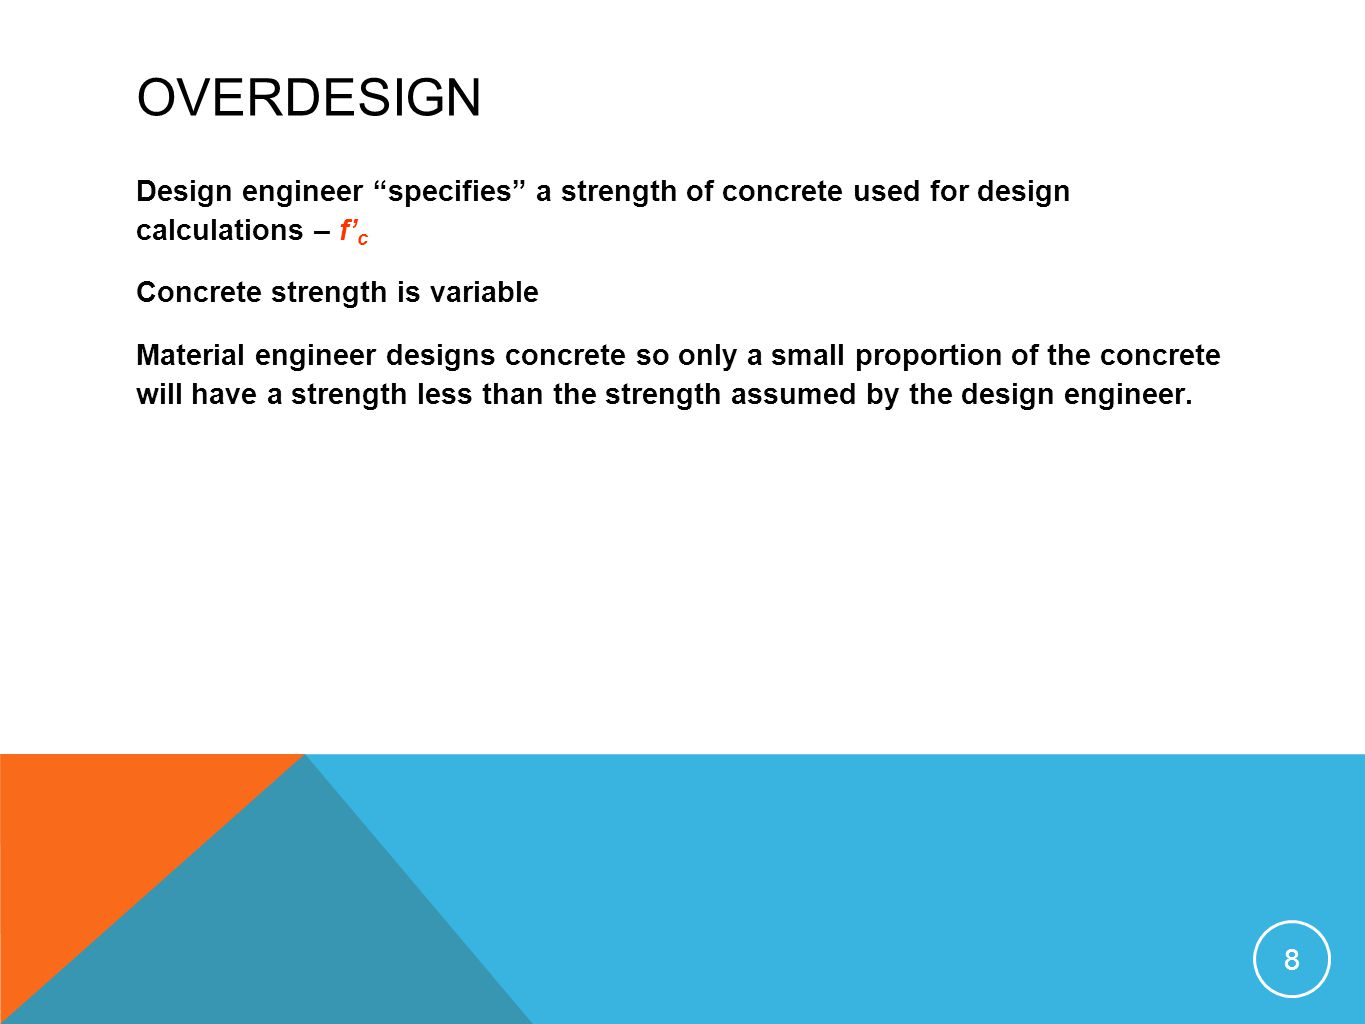 OVERDESIGN Design engineer specifies a strength of concrete used for design calculations – f'c. Concrete strength is variable.